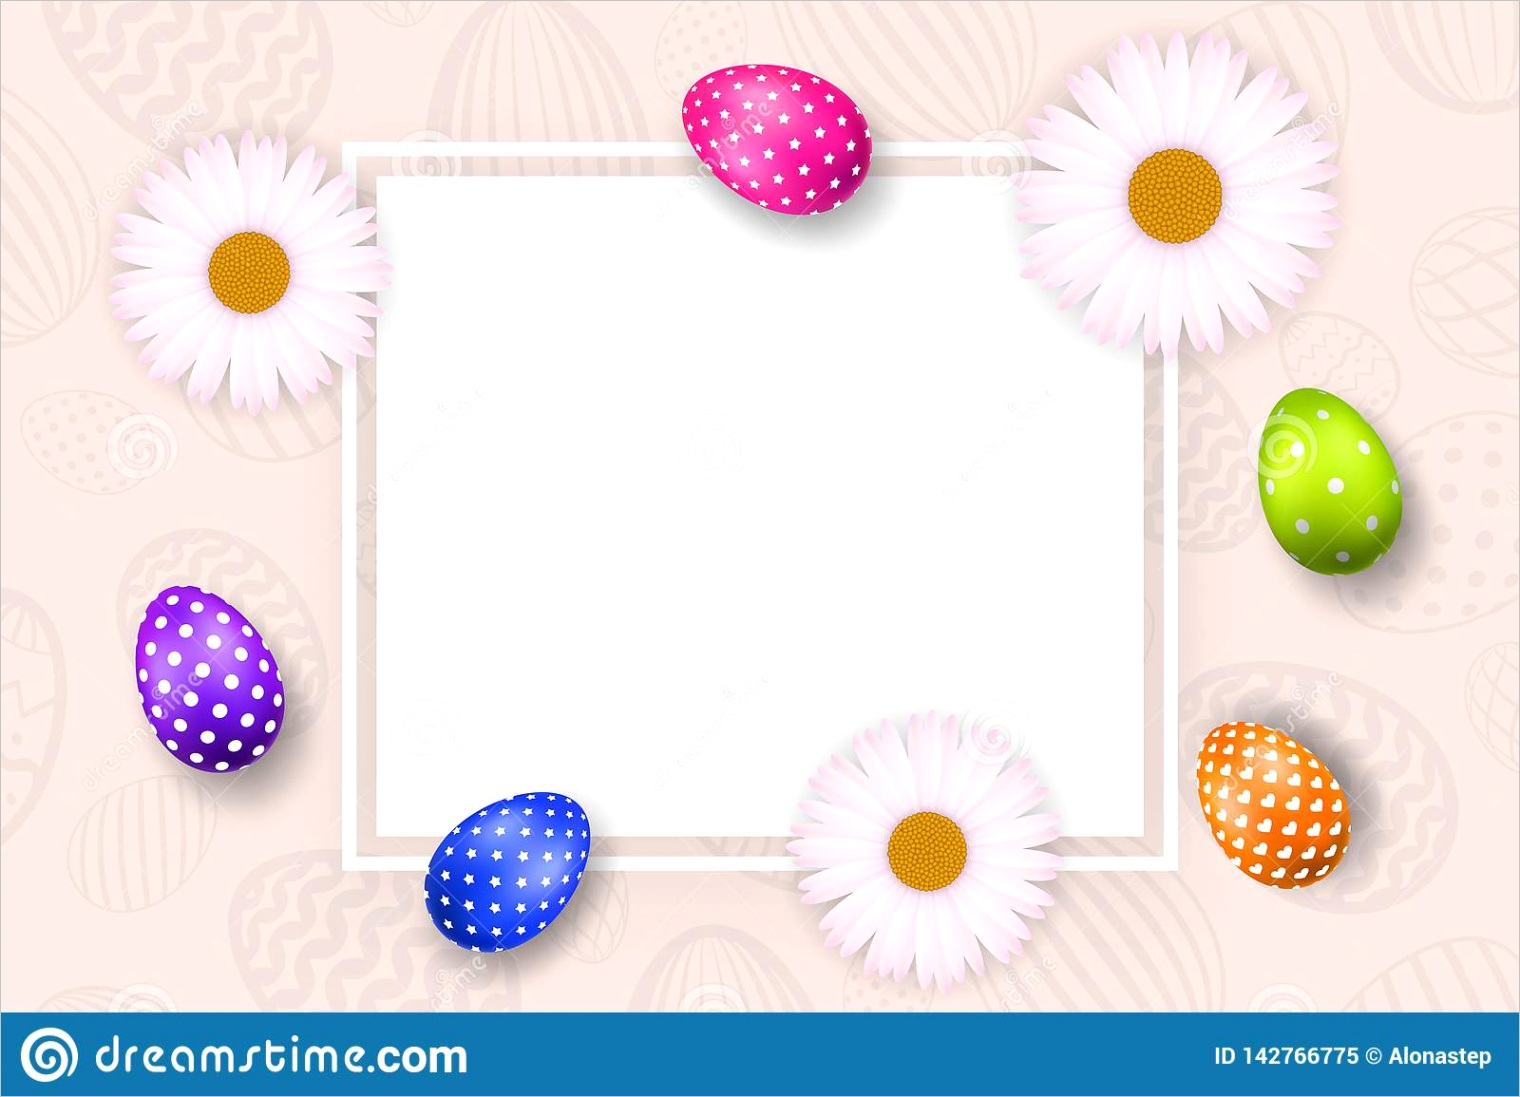 happy easter background pastel textured eggs chamomile decoration paper frame greeting d card border template empty space holiday image